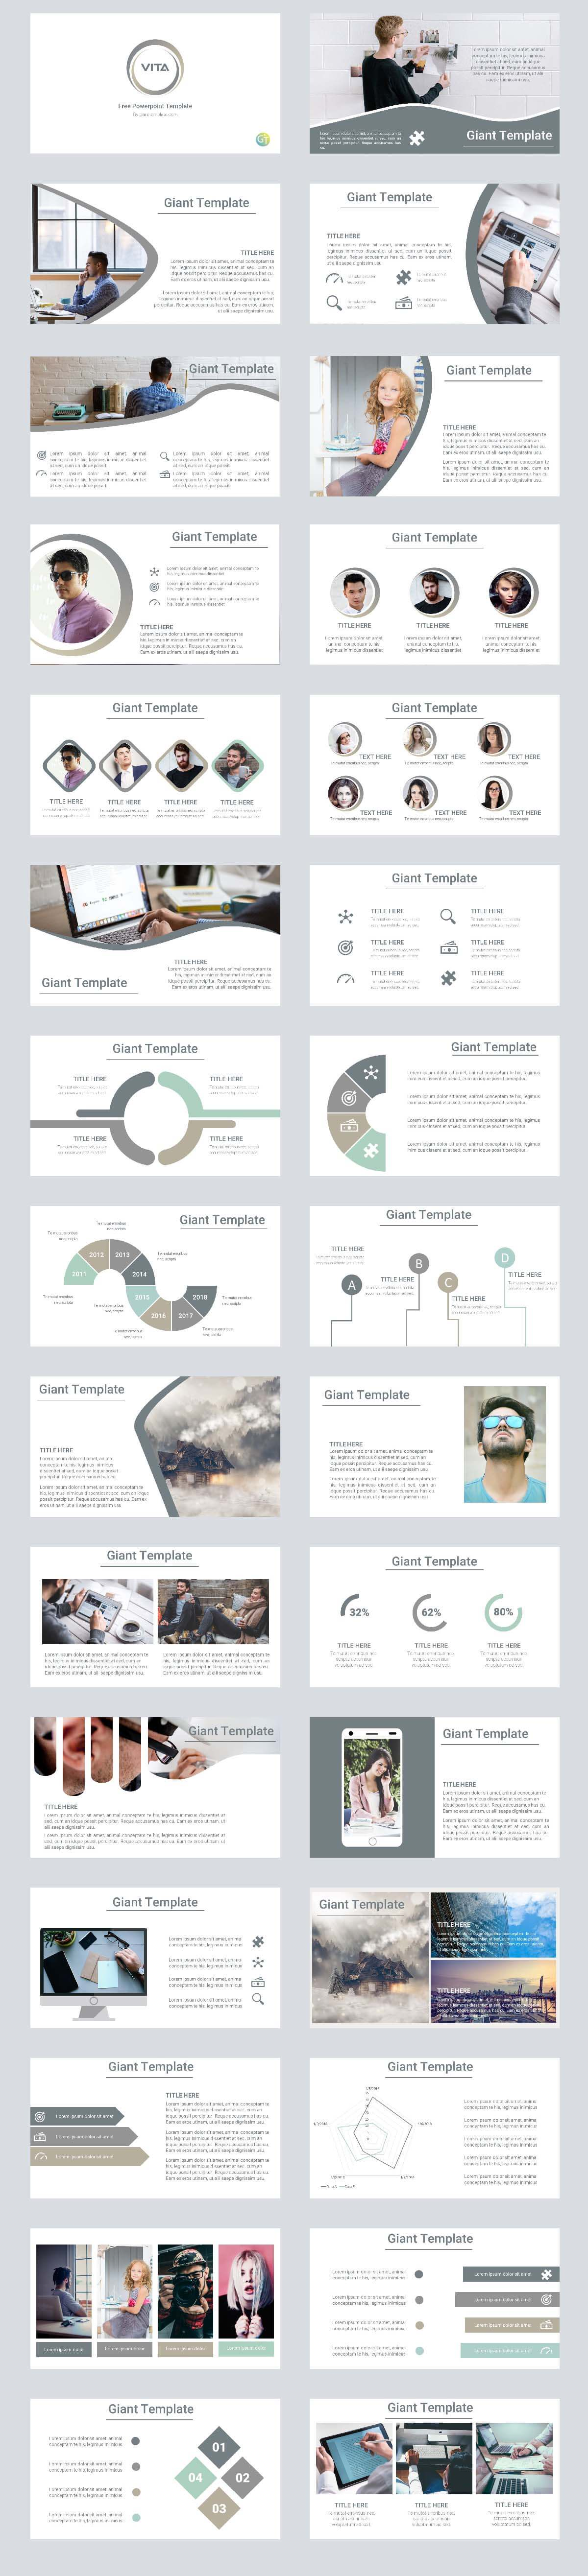 VITA - FREE BUSINESS POWERPOINT TEMPLATE